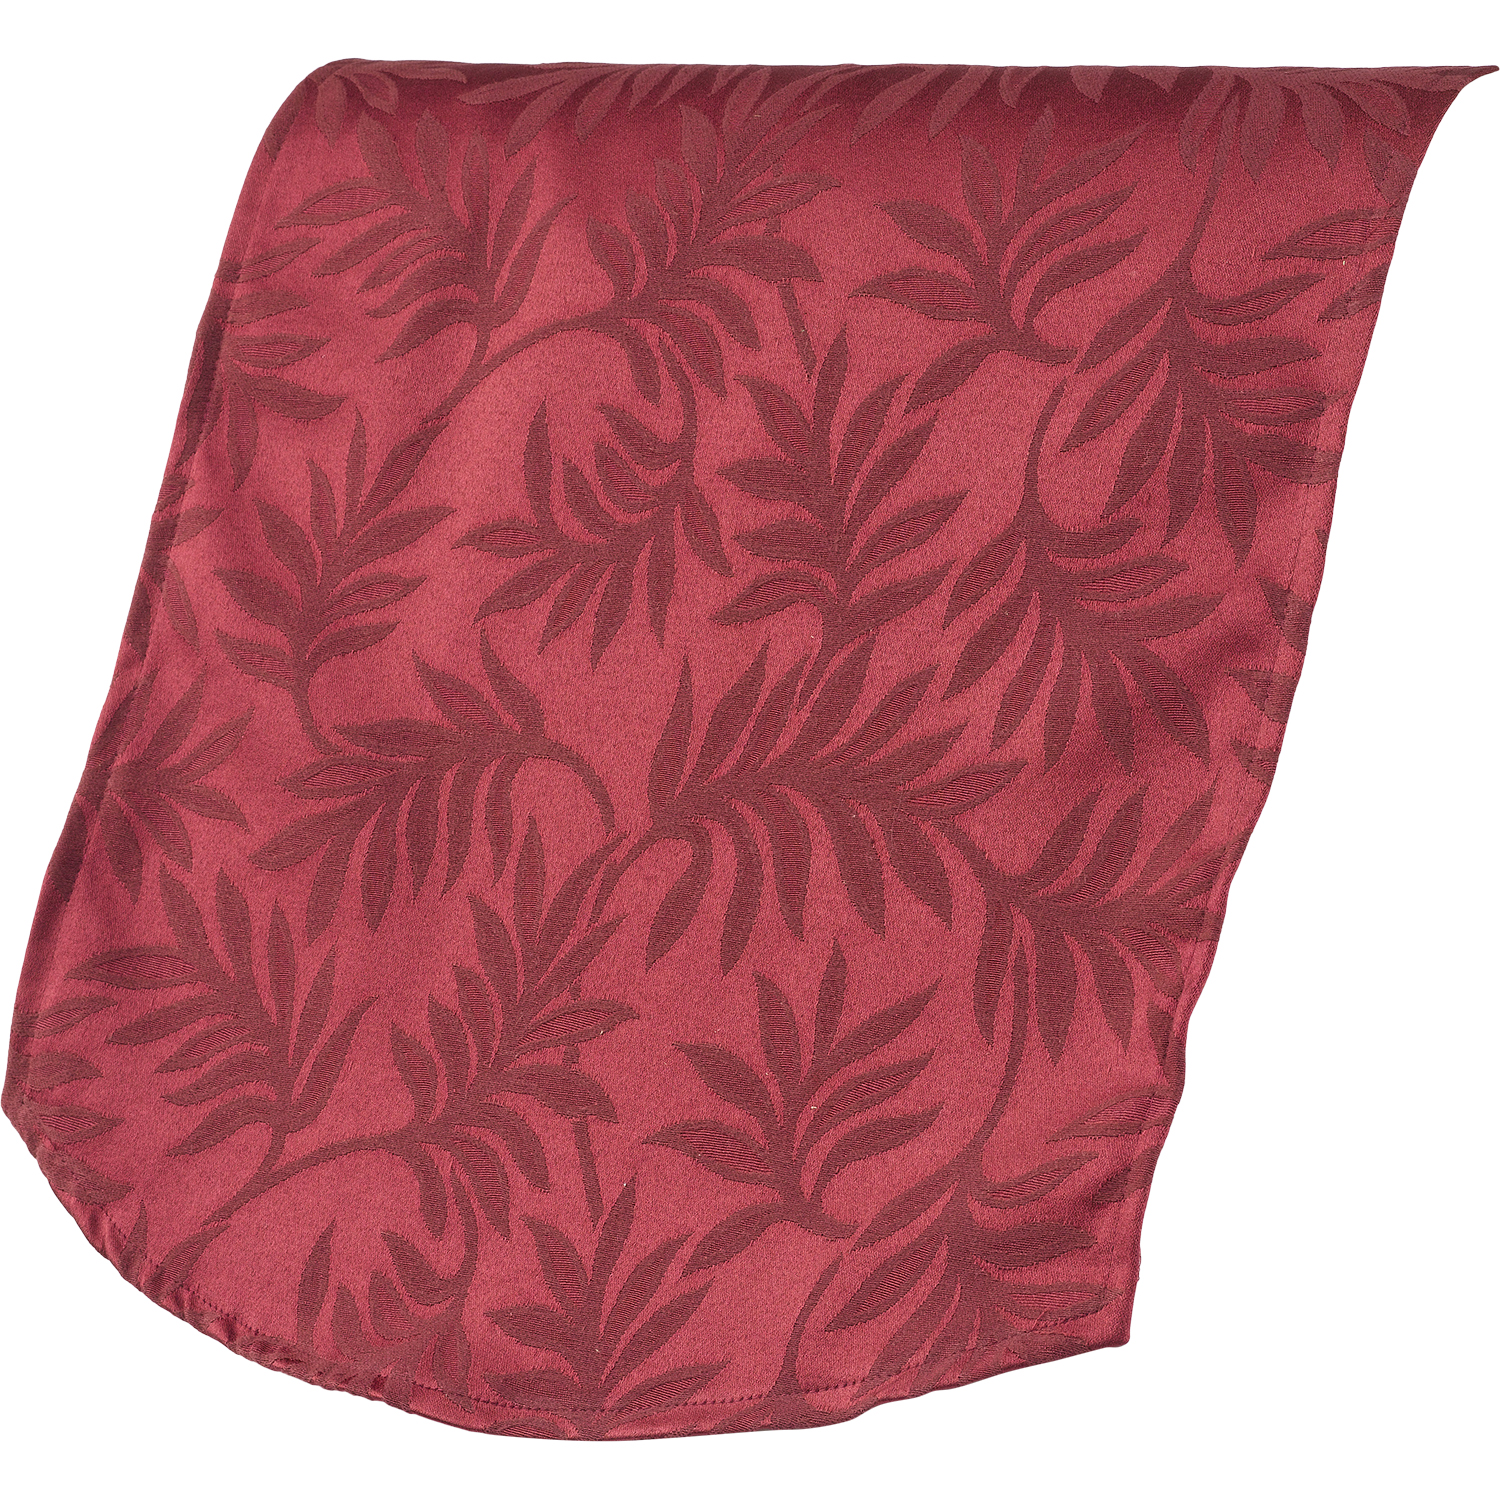 decorative chair covers dryer chairs salon traditional leaf style antimacassar chairback